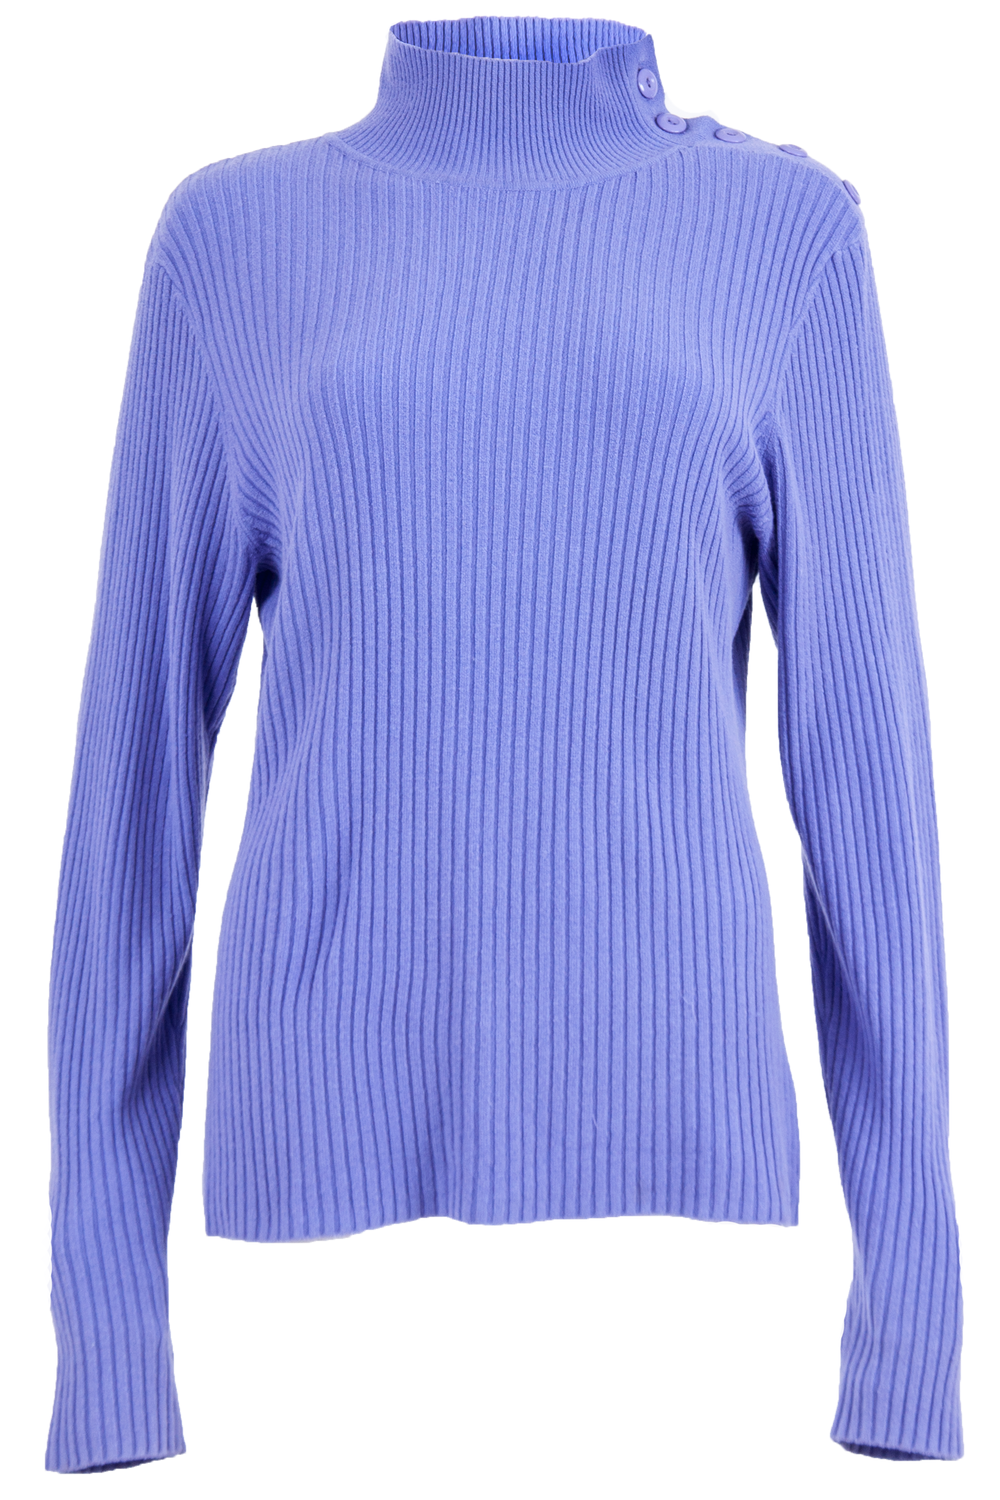 Purple mock neck sweater with ribbing